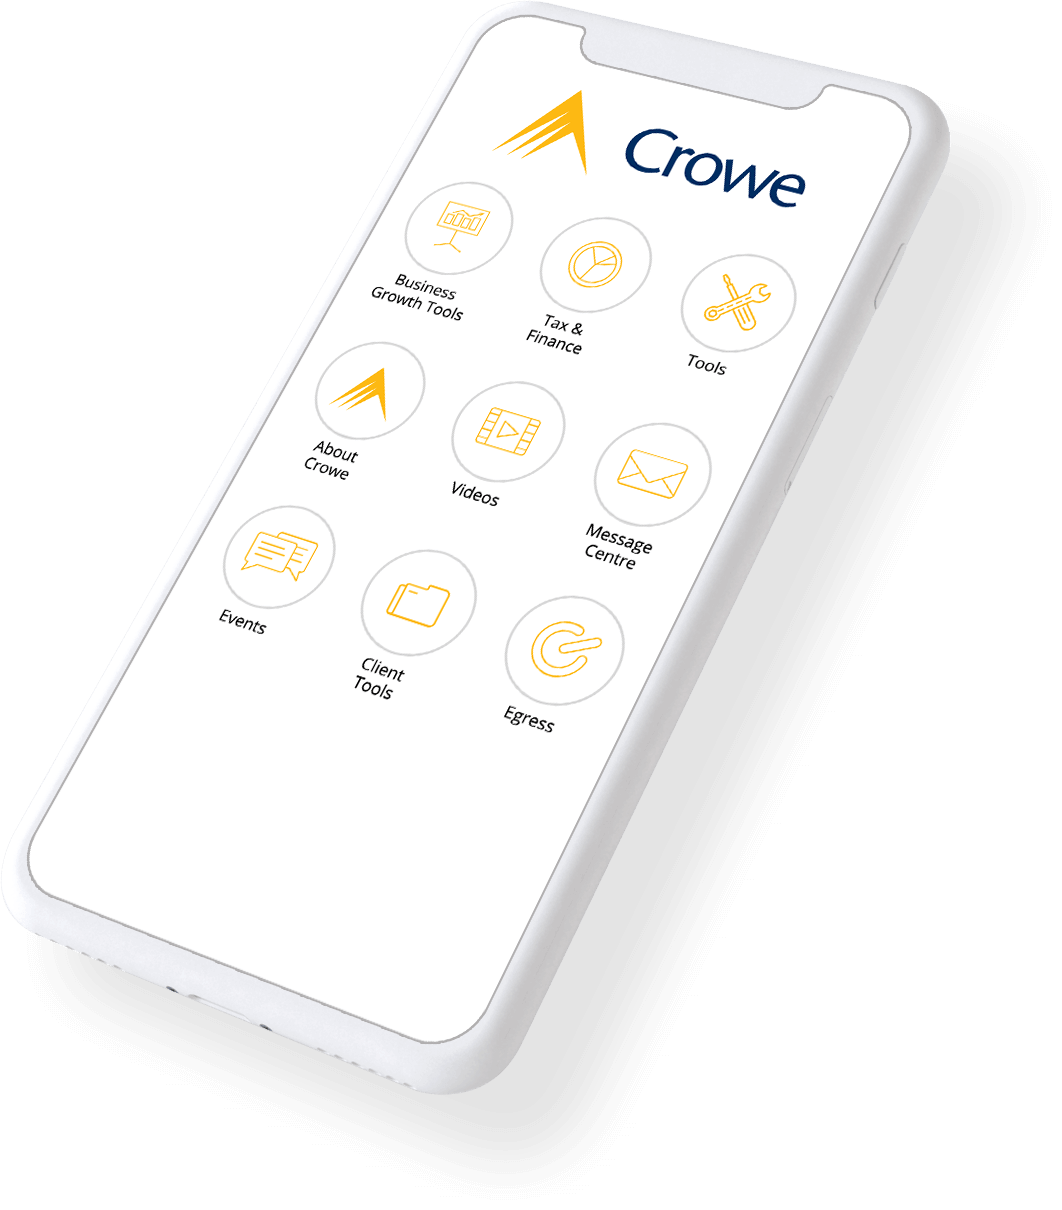 A branded app home screen for Crowe, on a mobile phone.